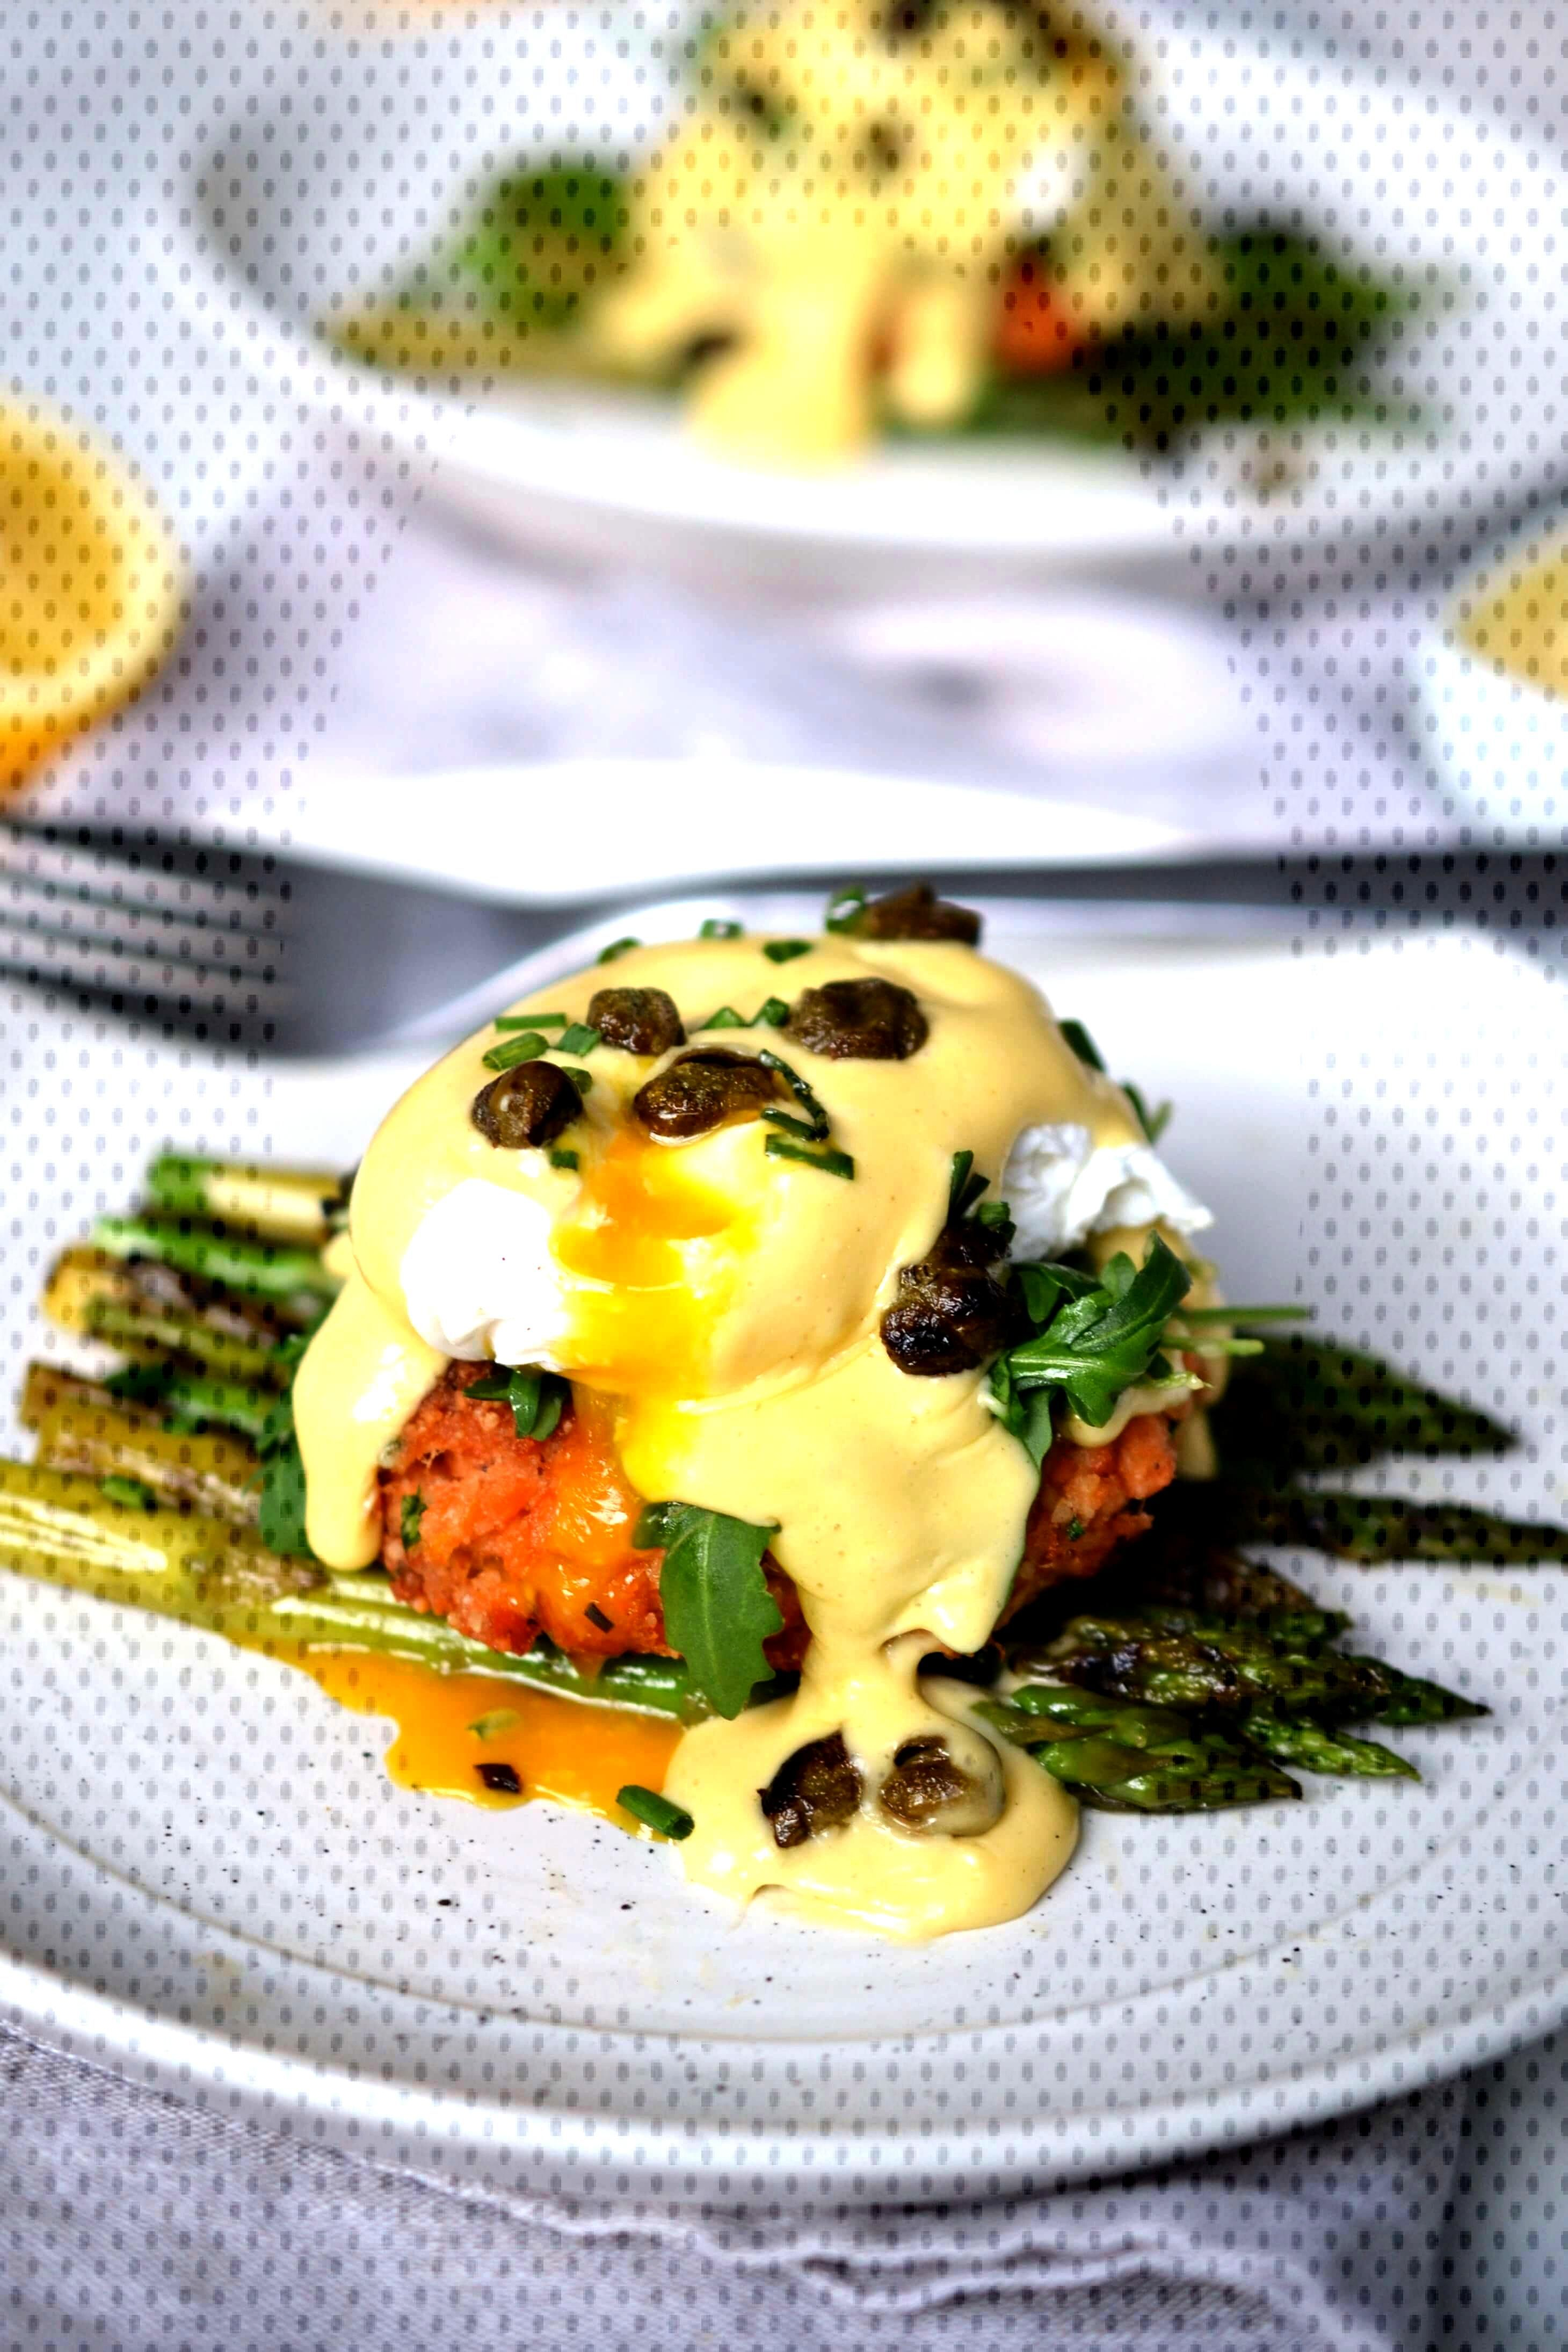 Salmon Cake Eggs Benedict with Lemon Hollandaise amp Crispy Capers | Every Last Bite - Salmon Cake E